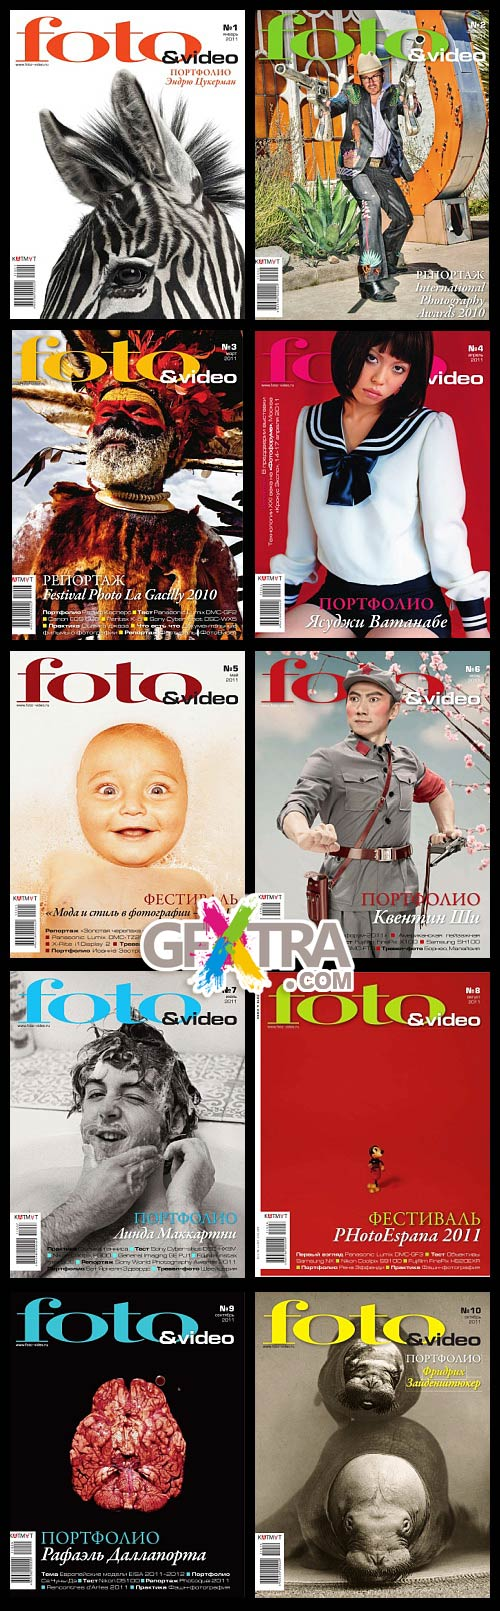 Foto & Video - 2011, First 10 Issues